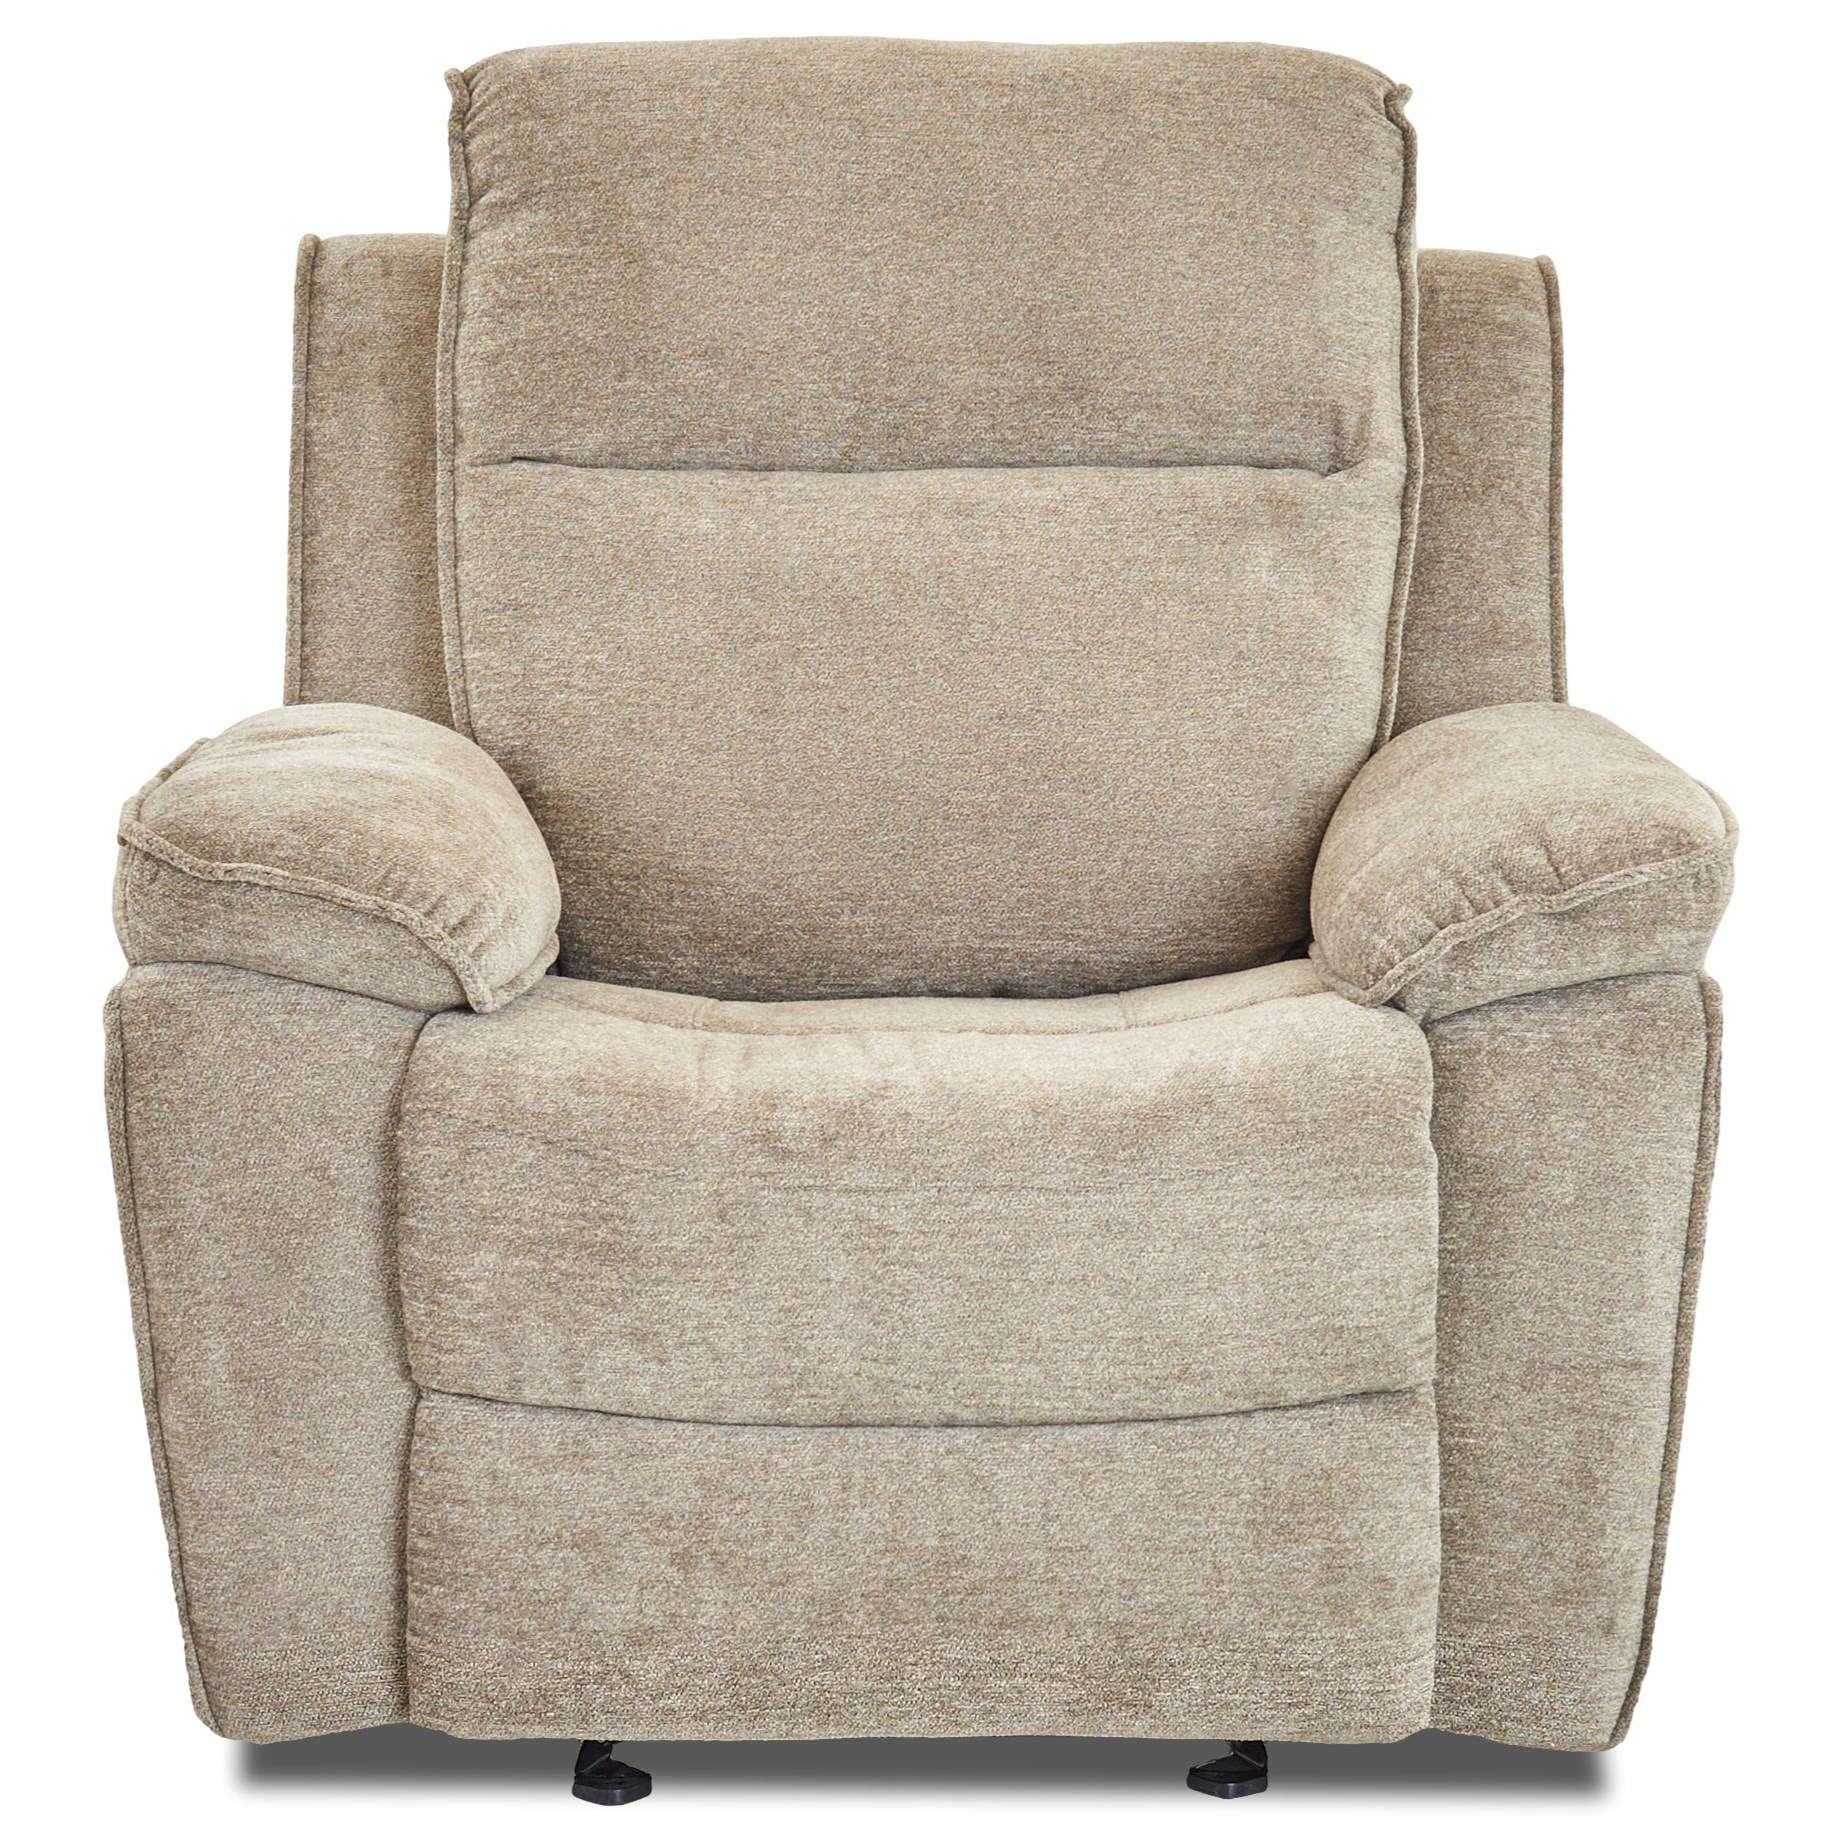 Castaway Casual Gliding Reclining Chair by Klaussner at Northeast Factory Direct